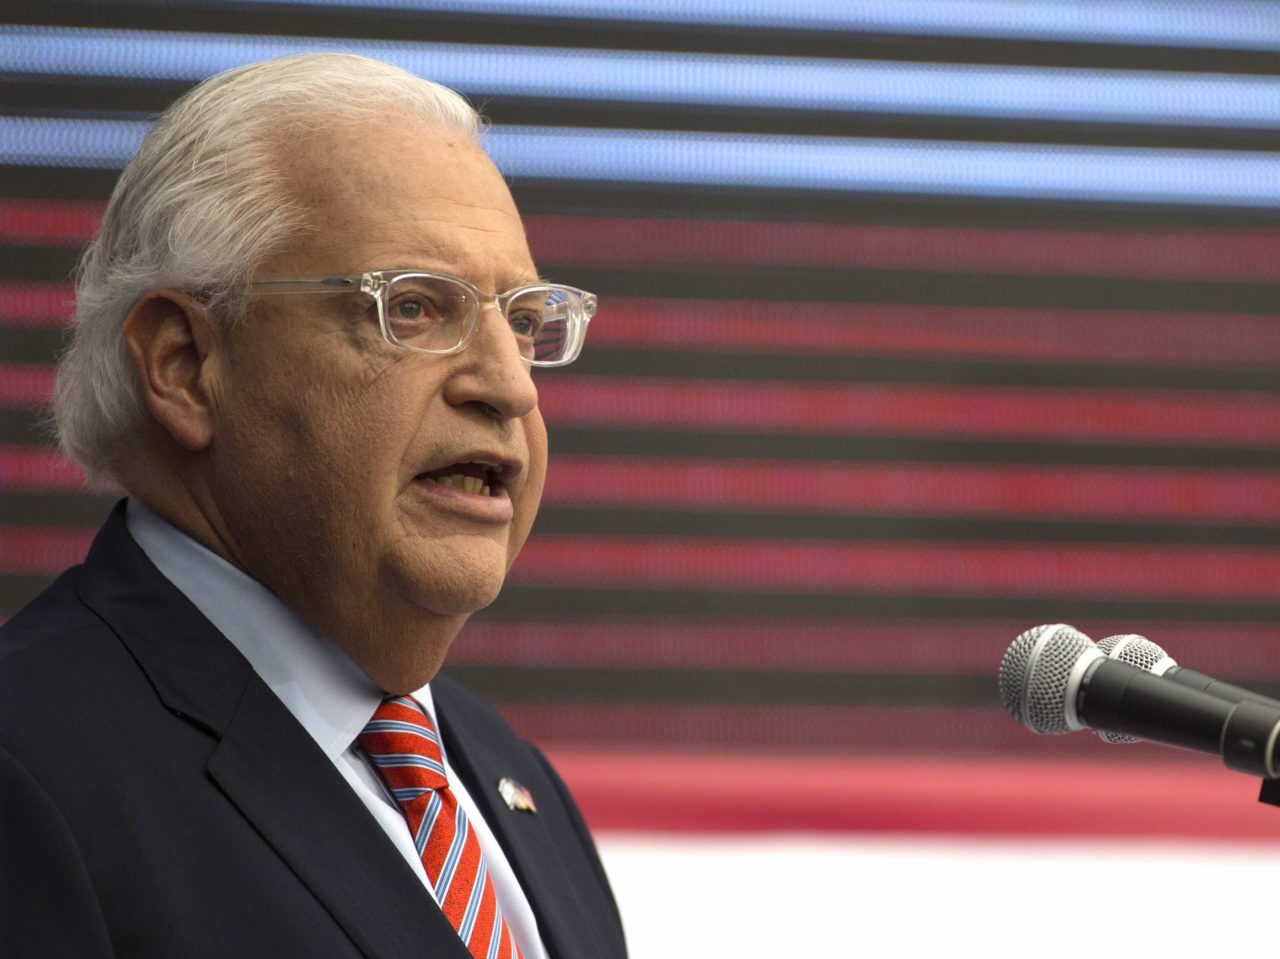 Exclusive — U.S. Ambassador David Friedman: Media Bear Some 'Responsibility' for Palestinian Deaths | Breitbart